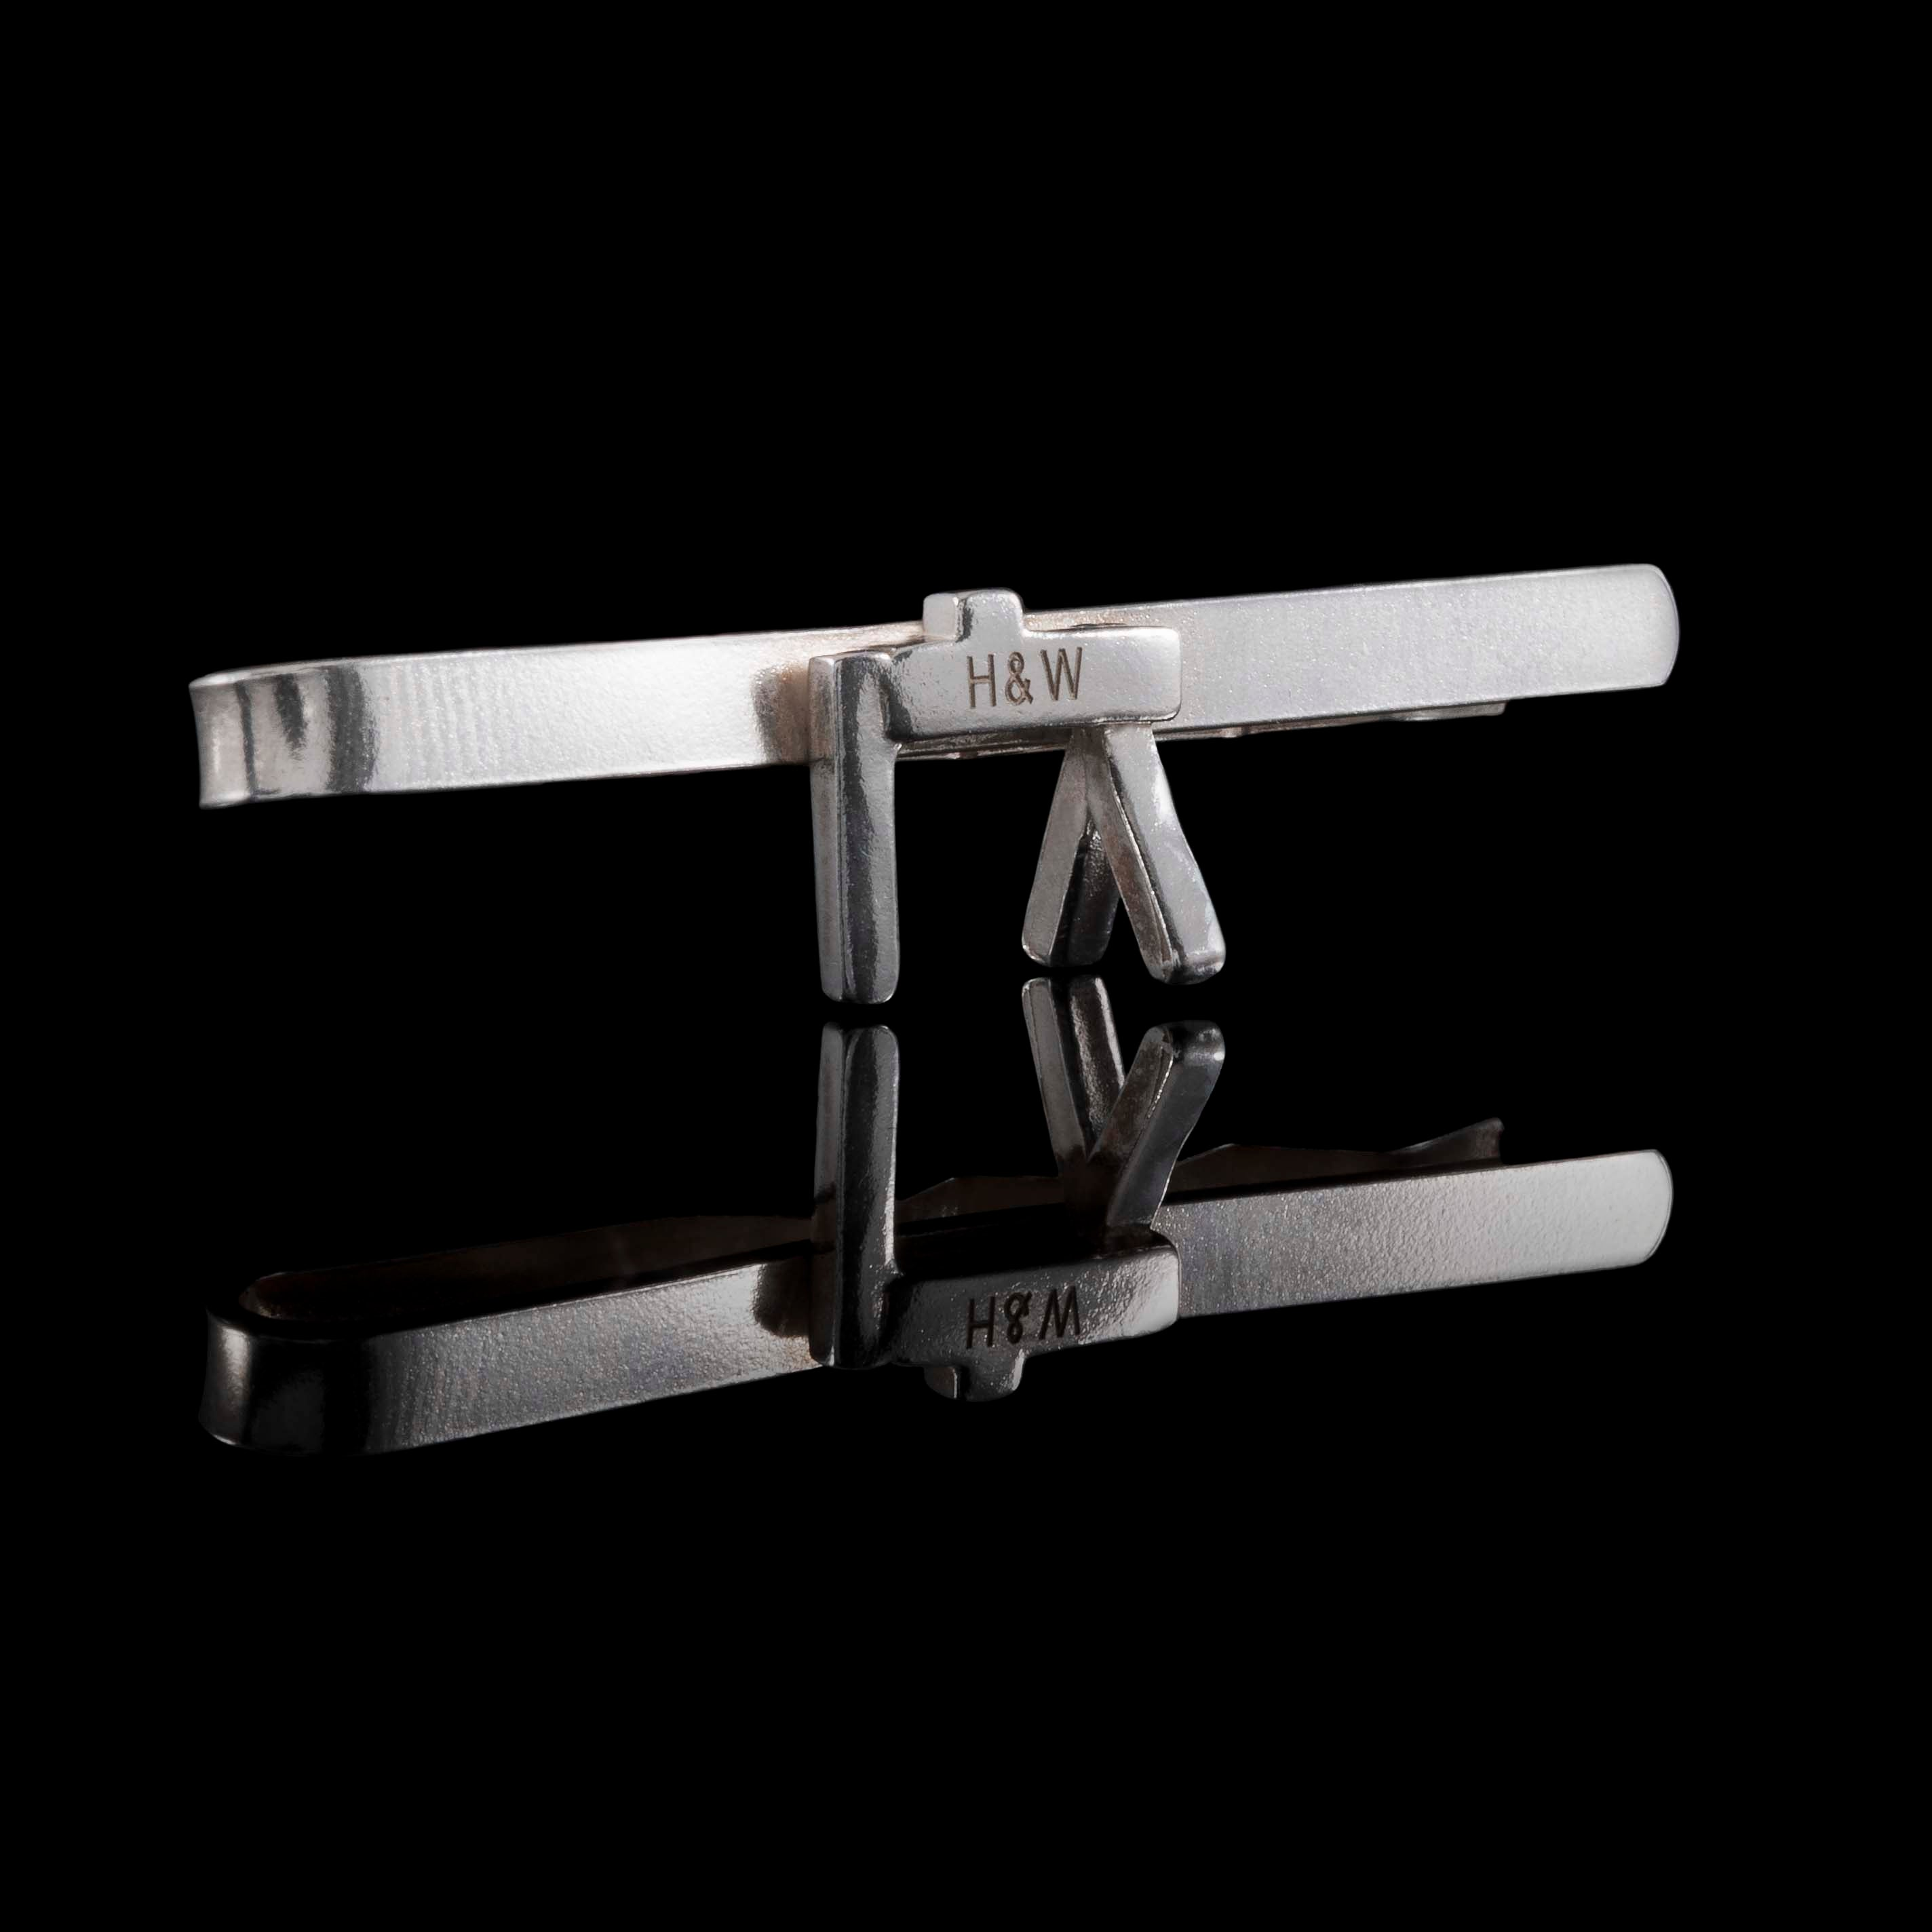 Using Sterling Silver and Hallmarking most pieces this collection is of Tie Clips. This photograph shows the Belfast Crane with a Tie Clip bar attached to the uppermost horizontal beam.